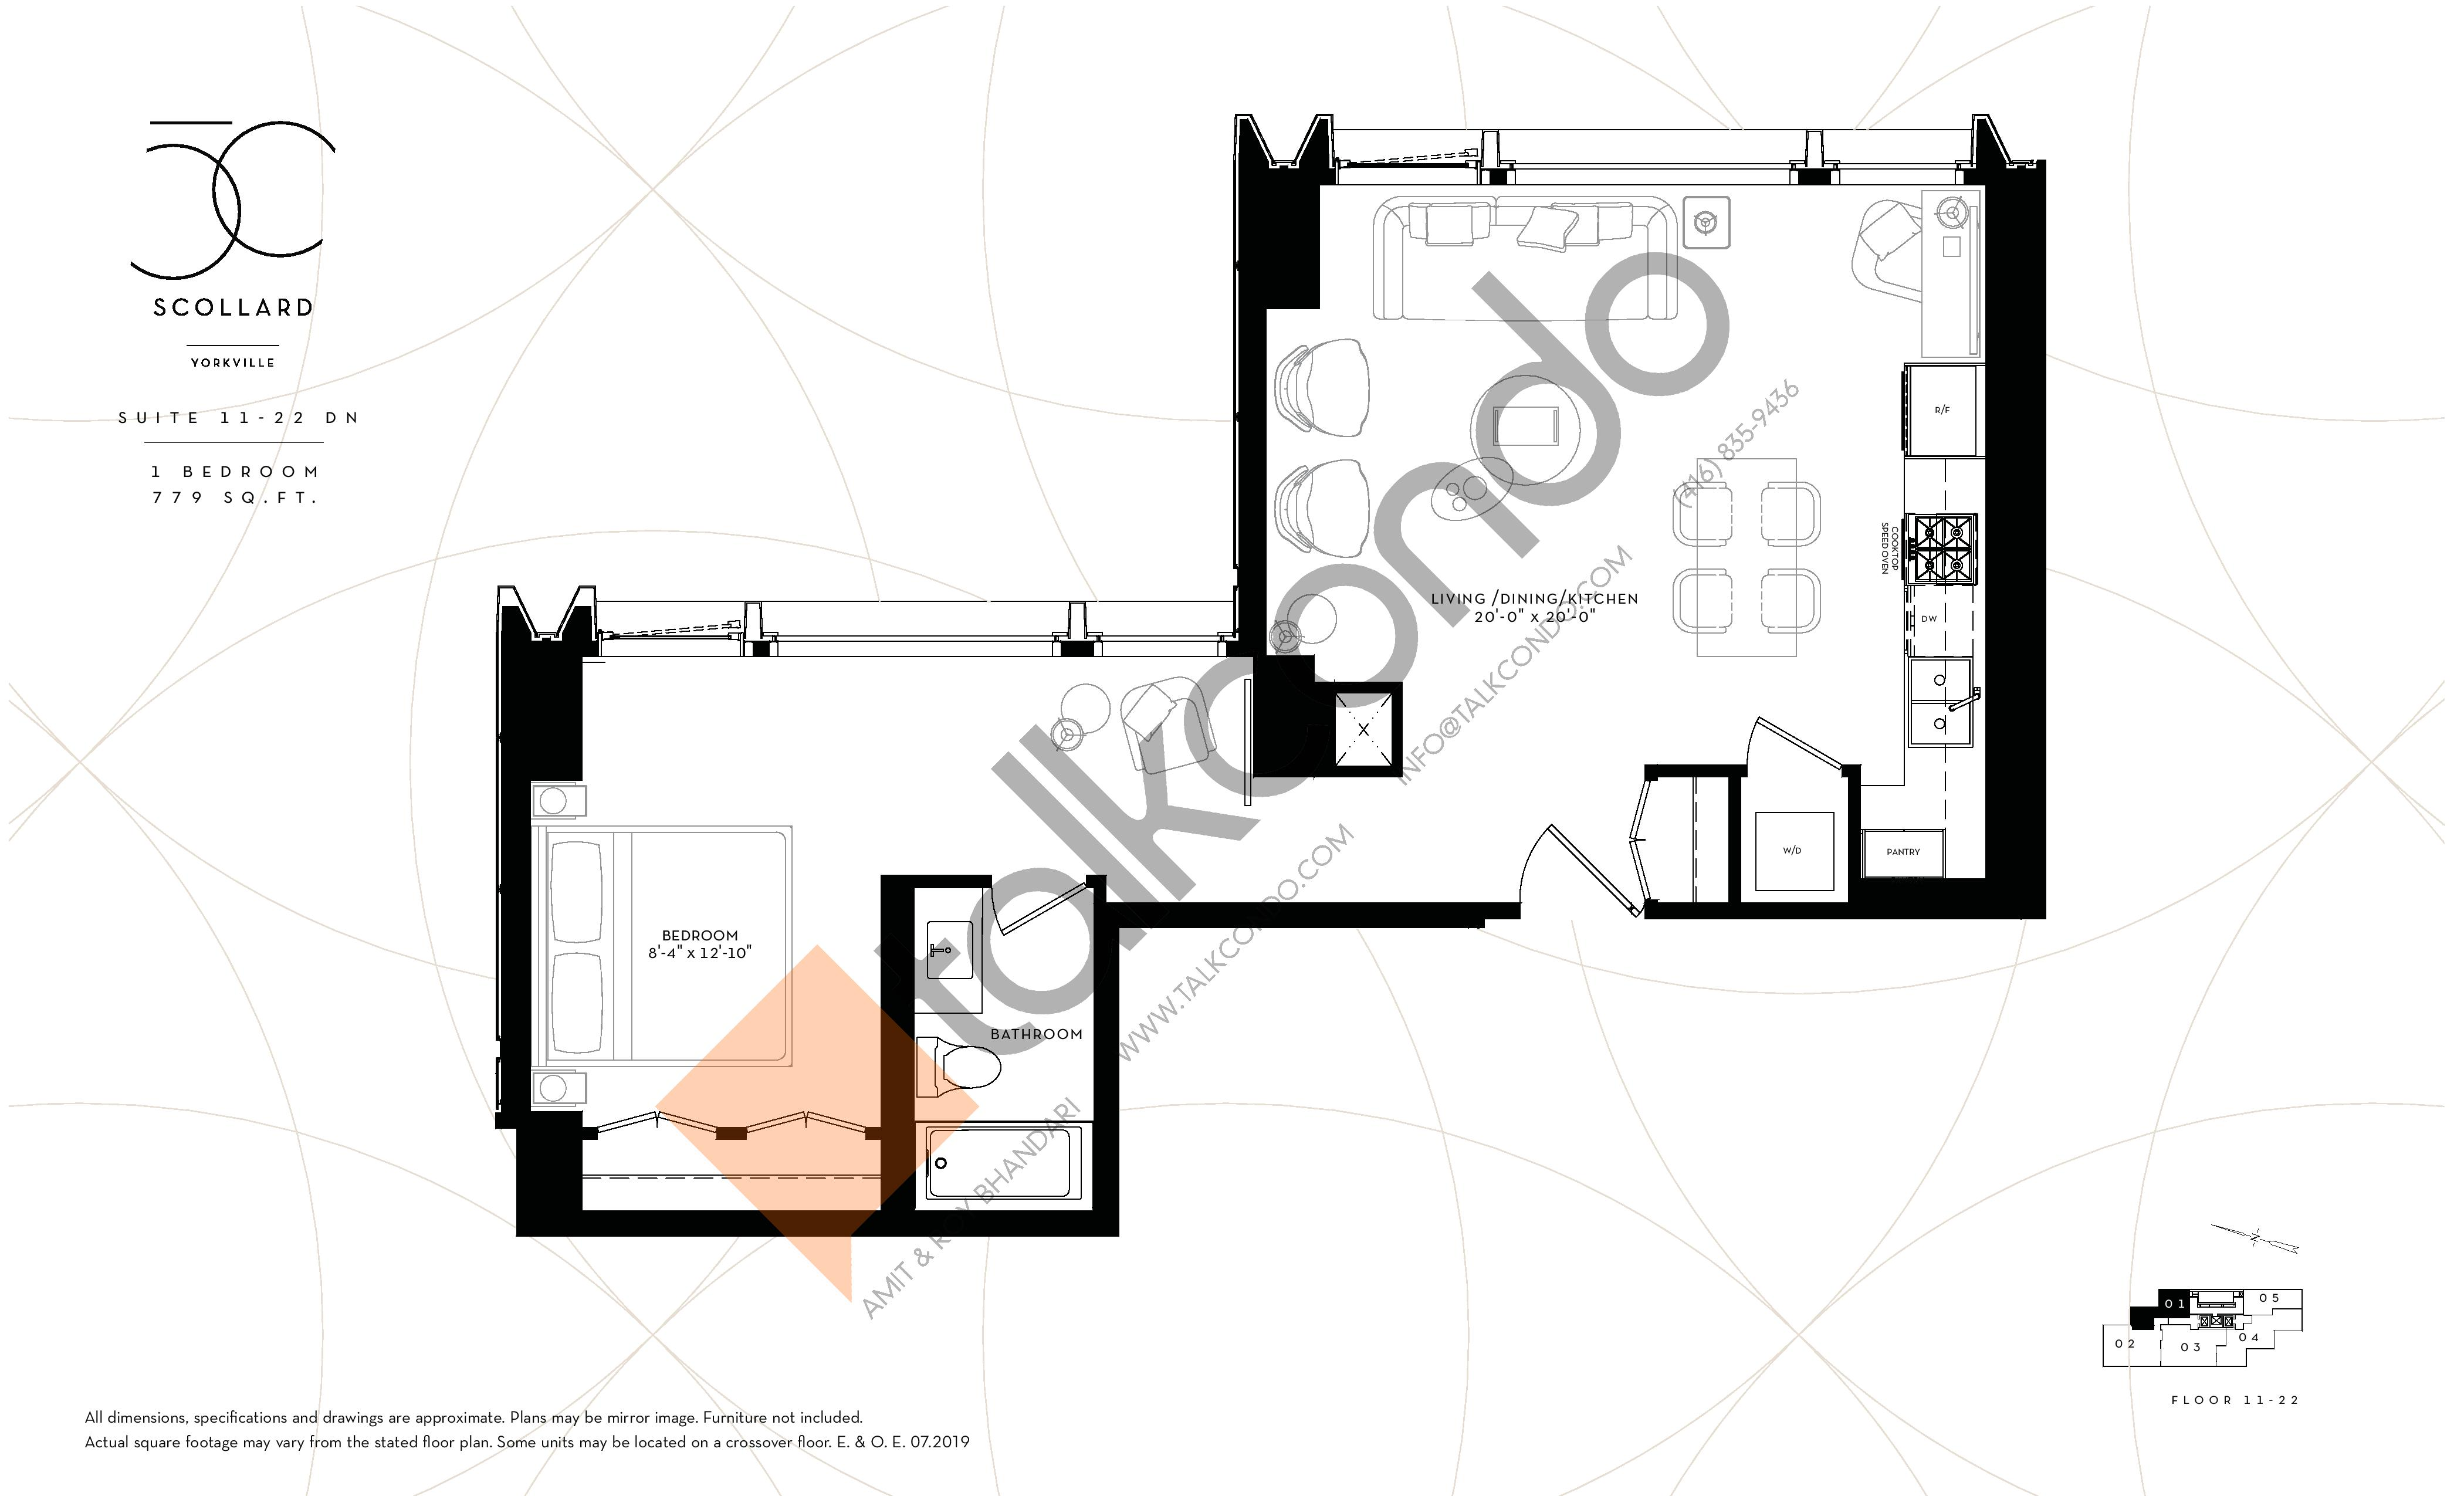 Suite 11-22 DN Floor Plan at Fifty Scollard Condos - 779 sq.ft